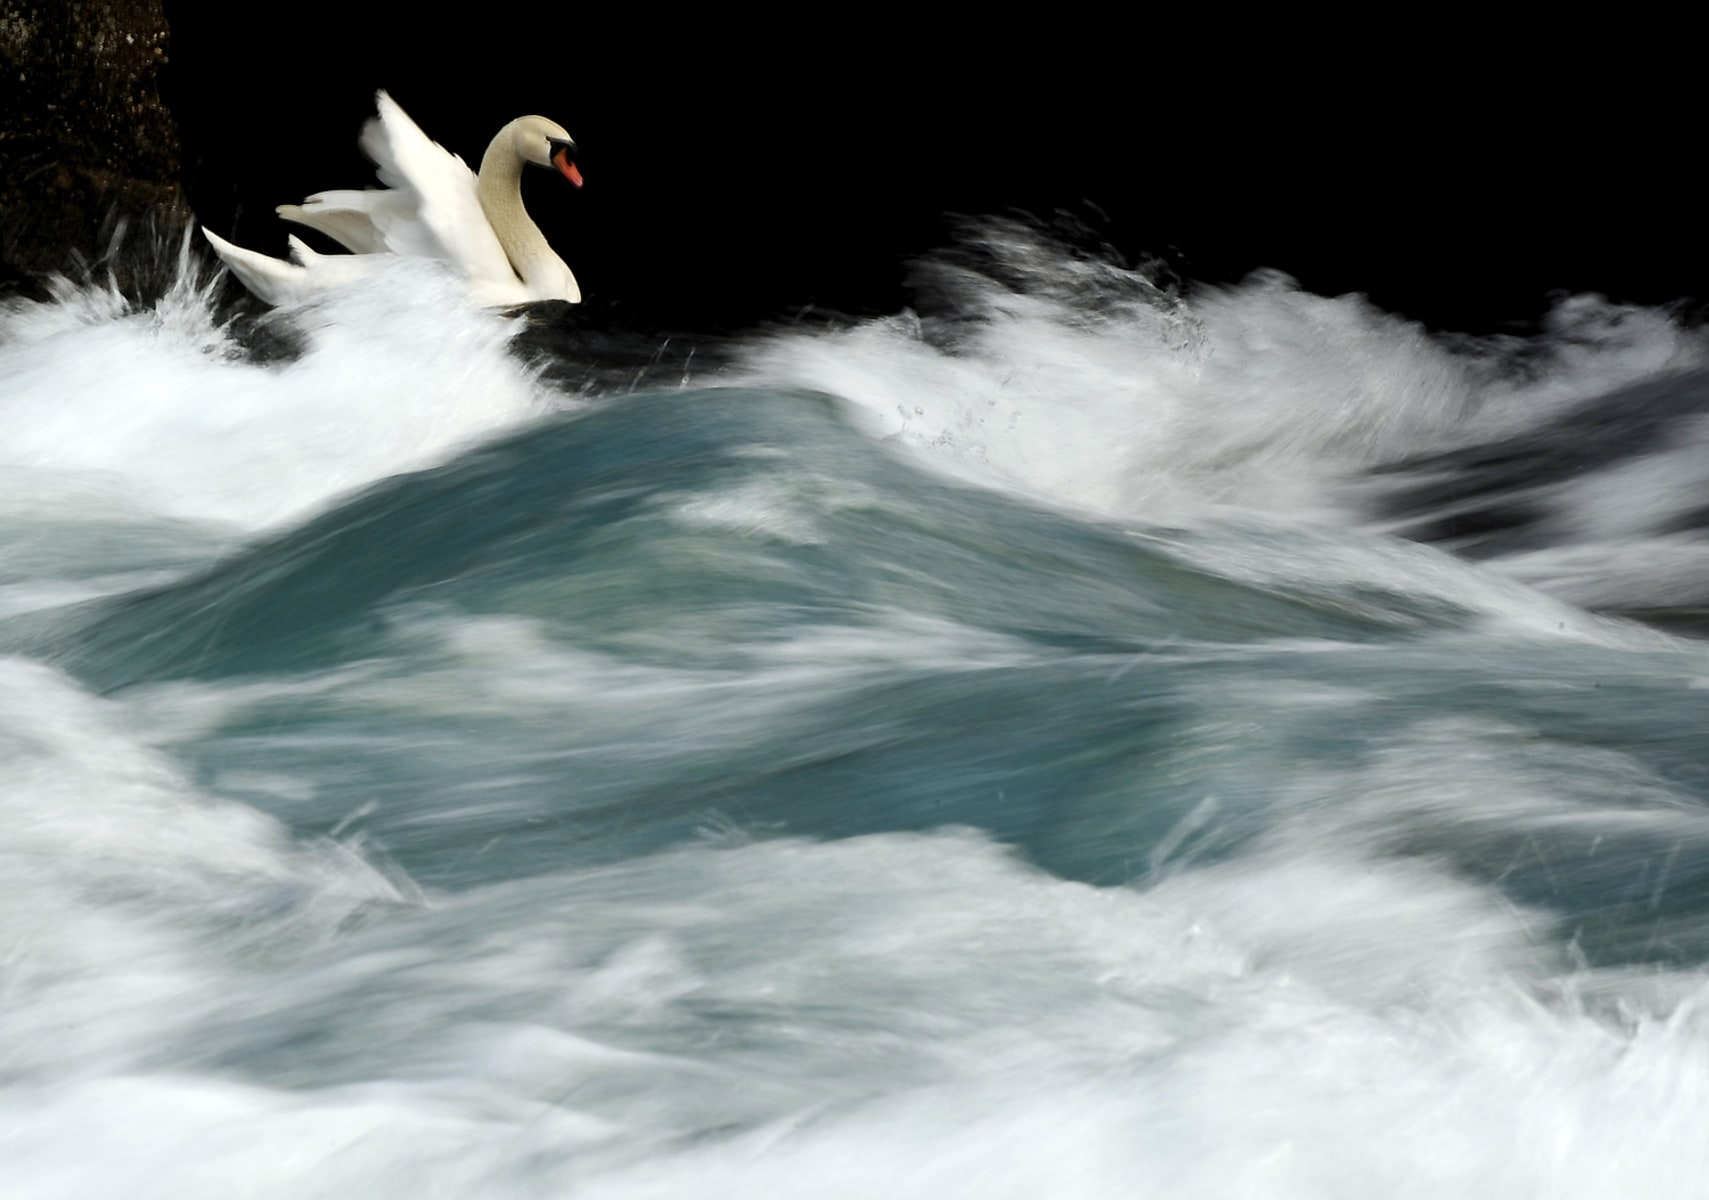 Image: Swan swims at the river mouth between the River Drim and Ohrid Lake in the city of Struga